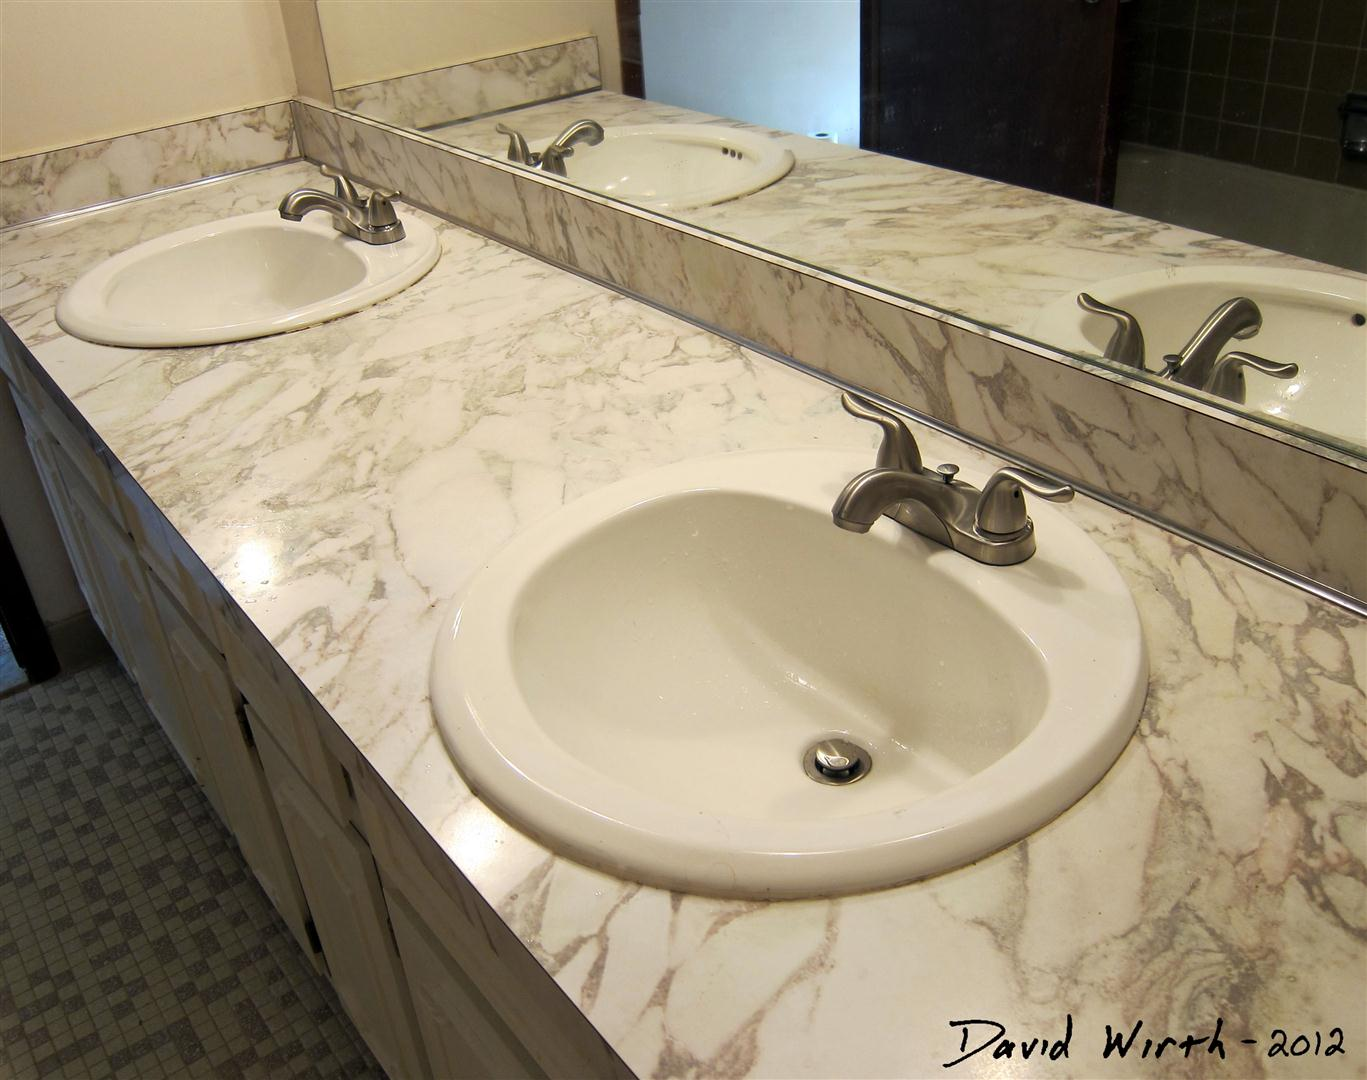 natural how to install a bathroom sink faucet Life 12am